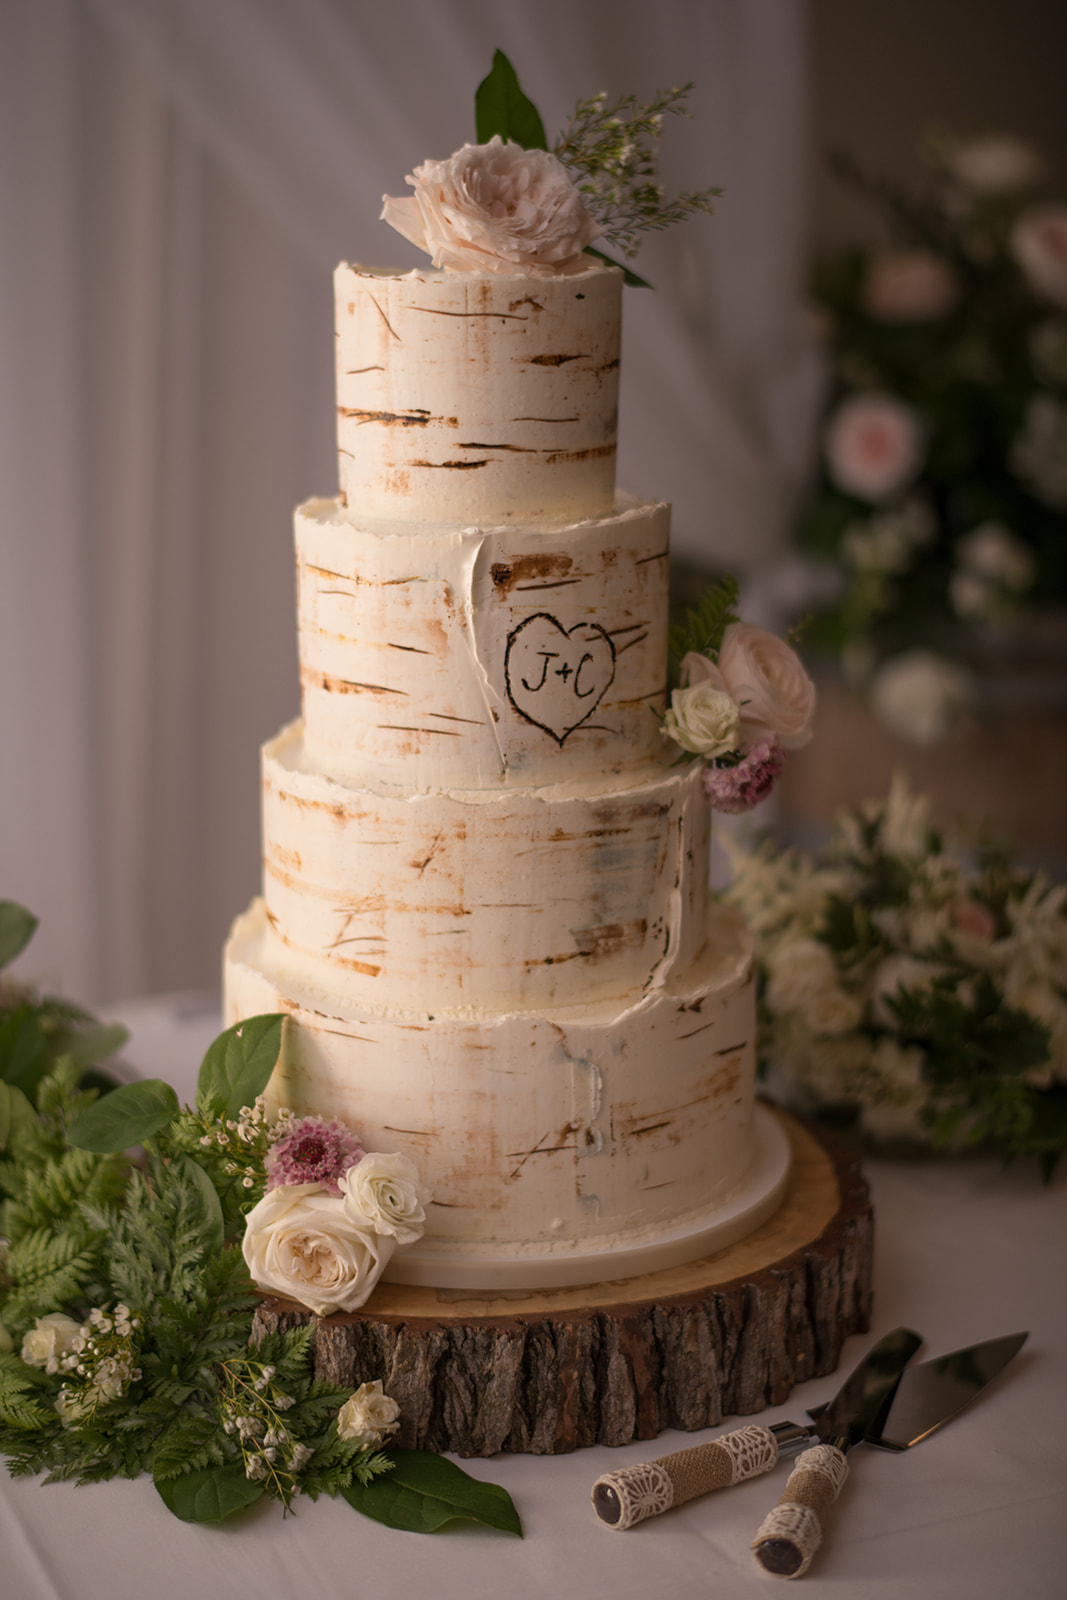 Hand-painted birch buttercream